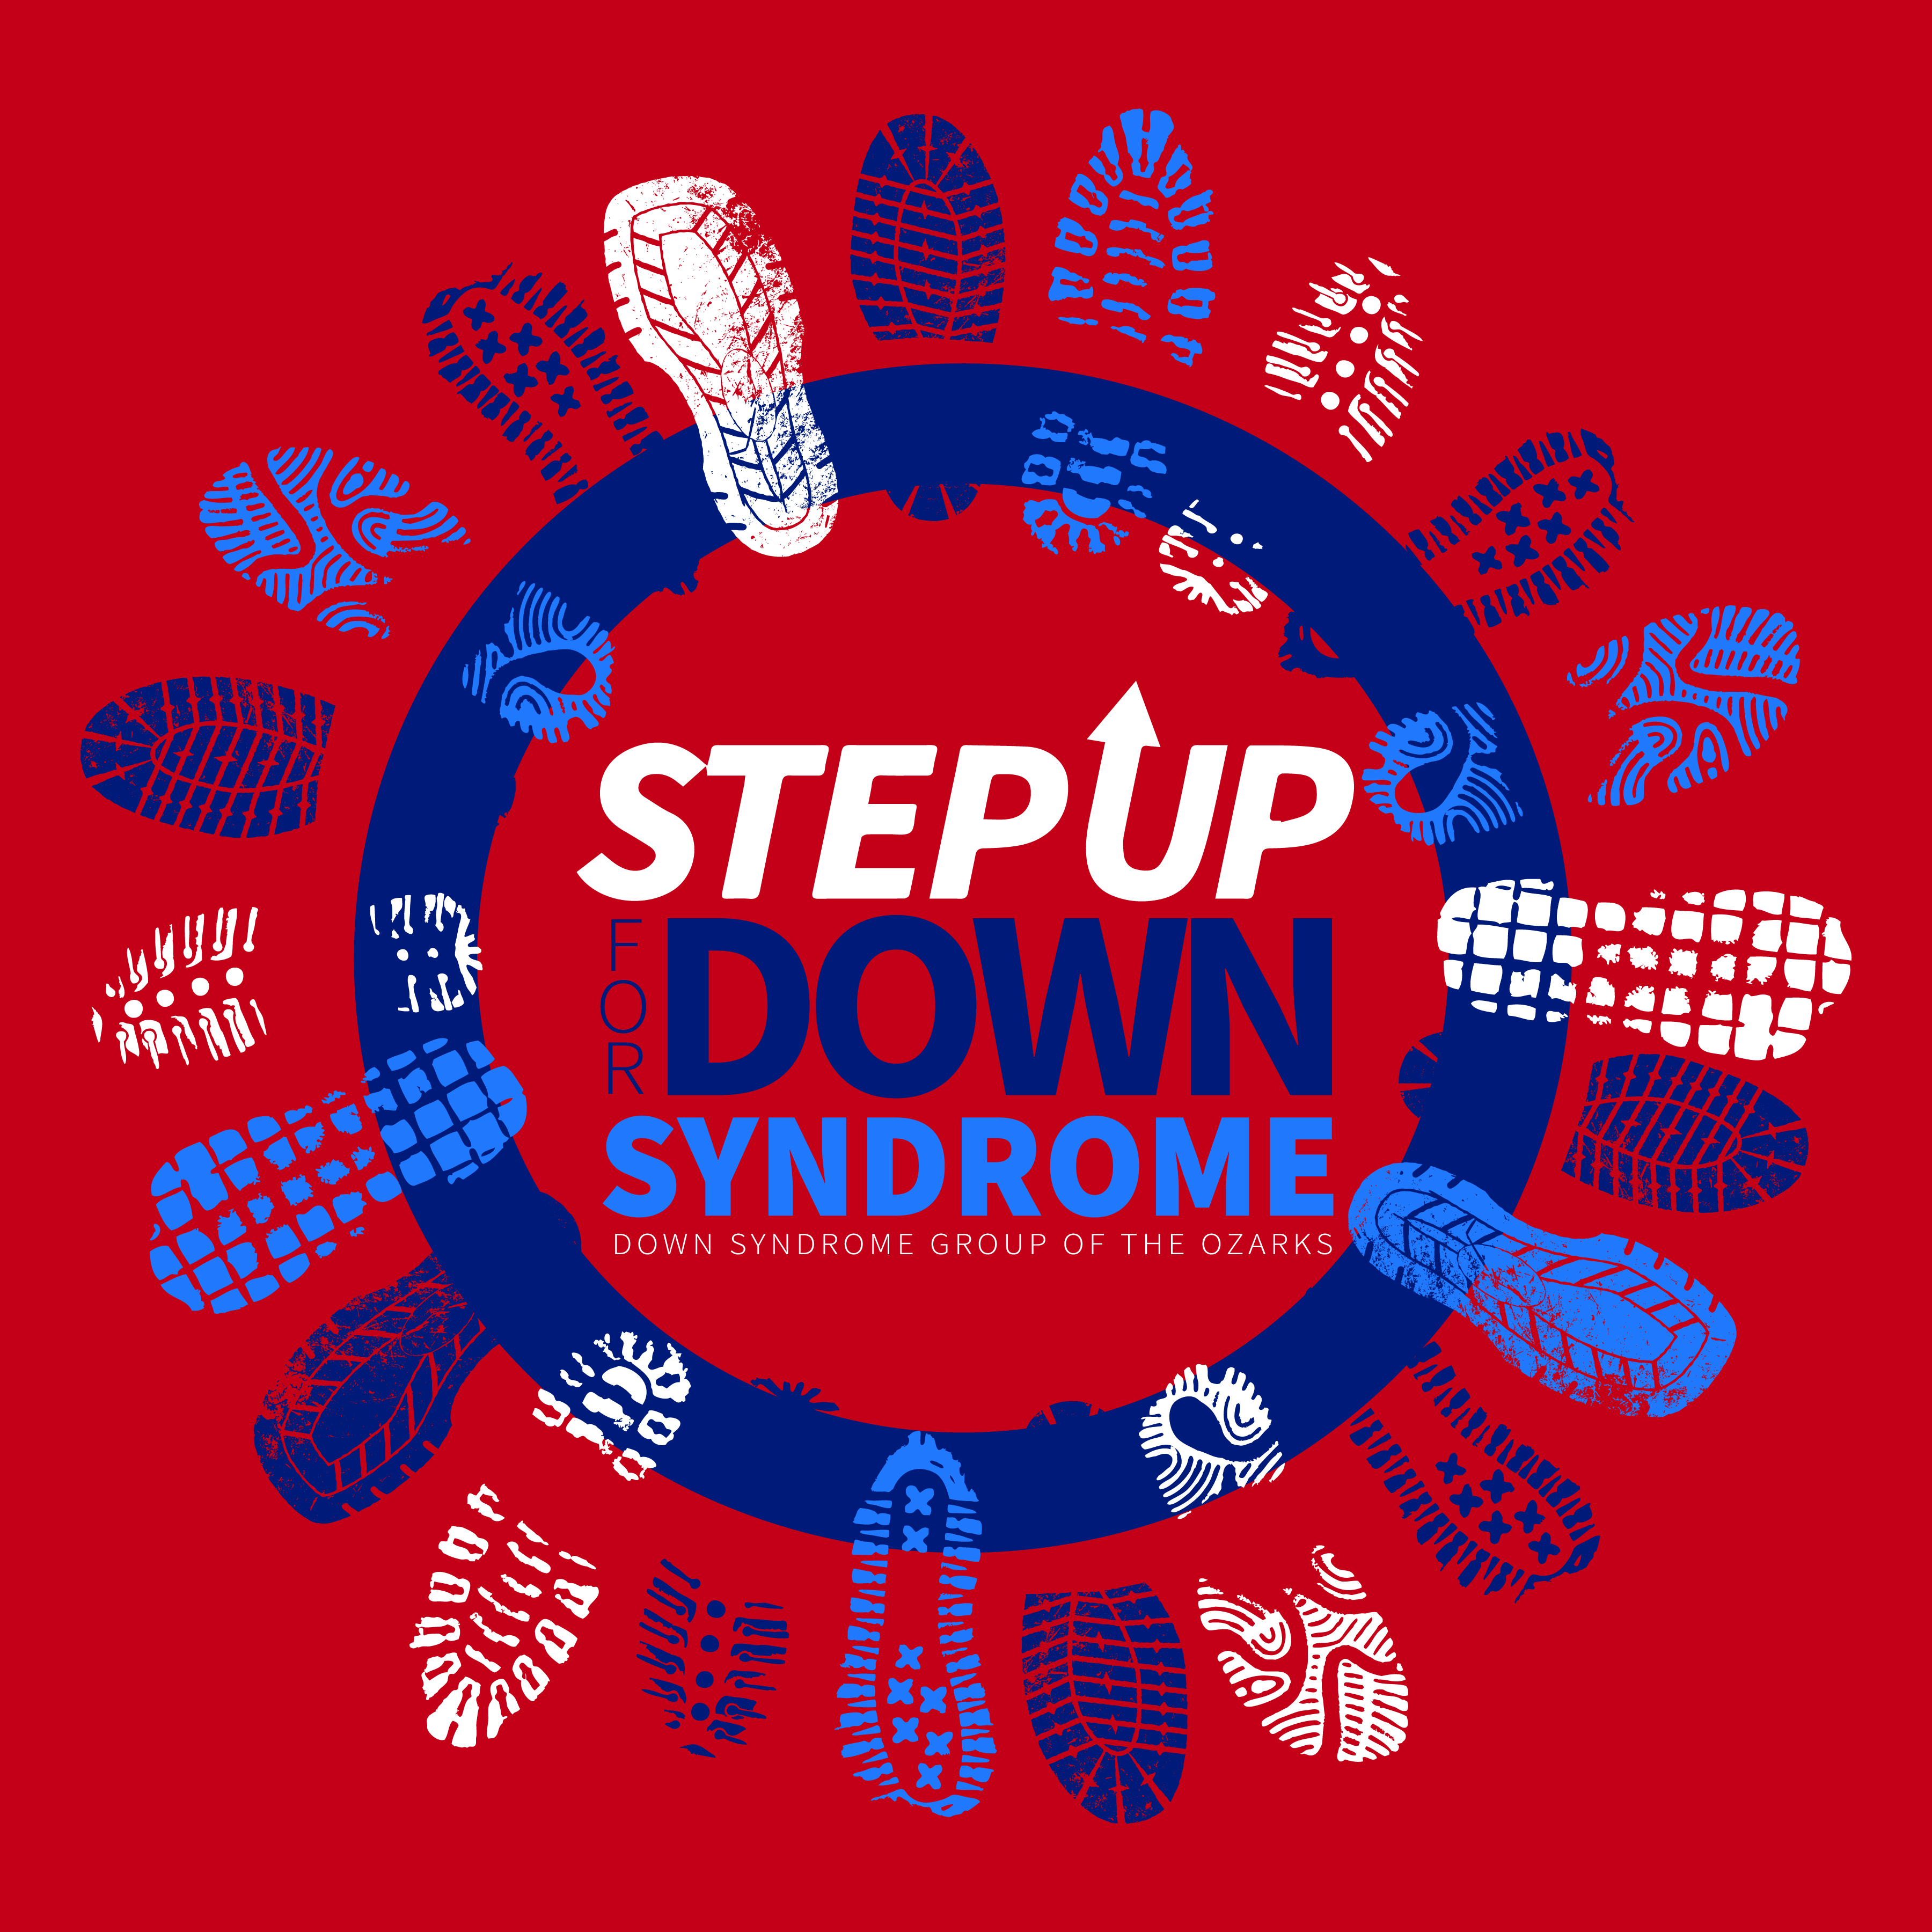 Step Up for Down Syndrome